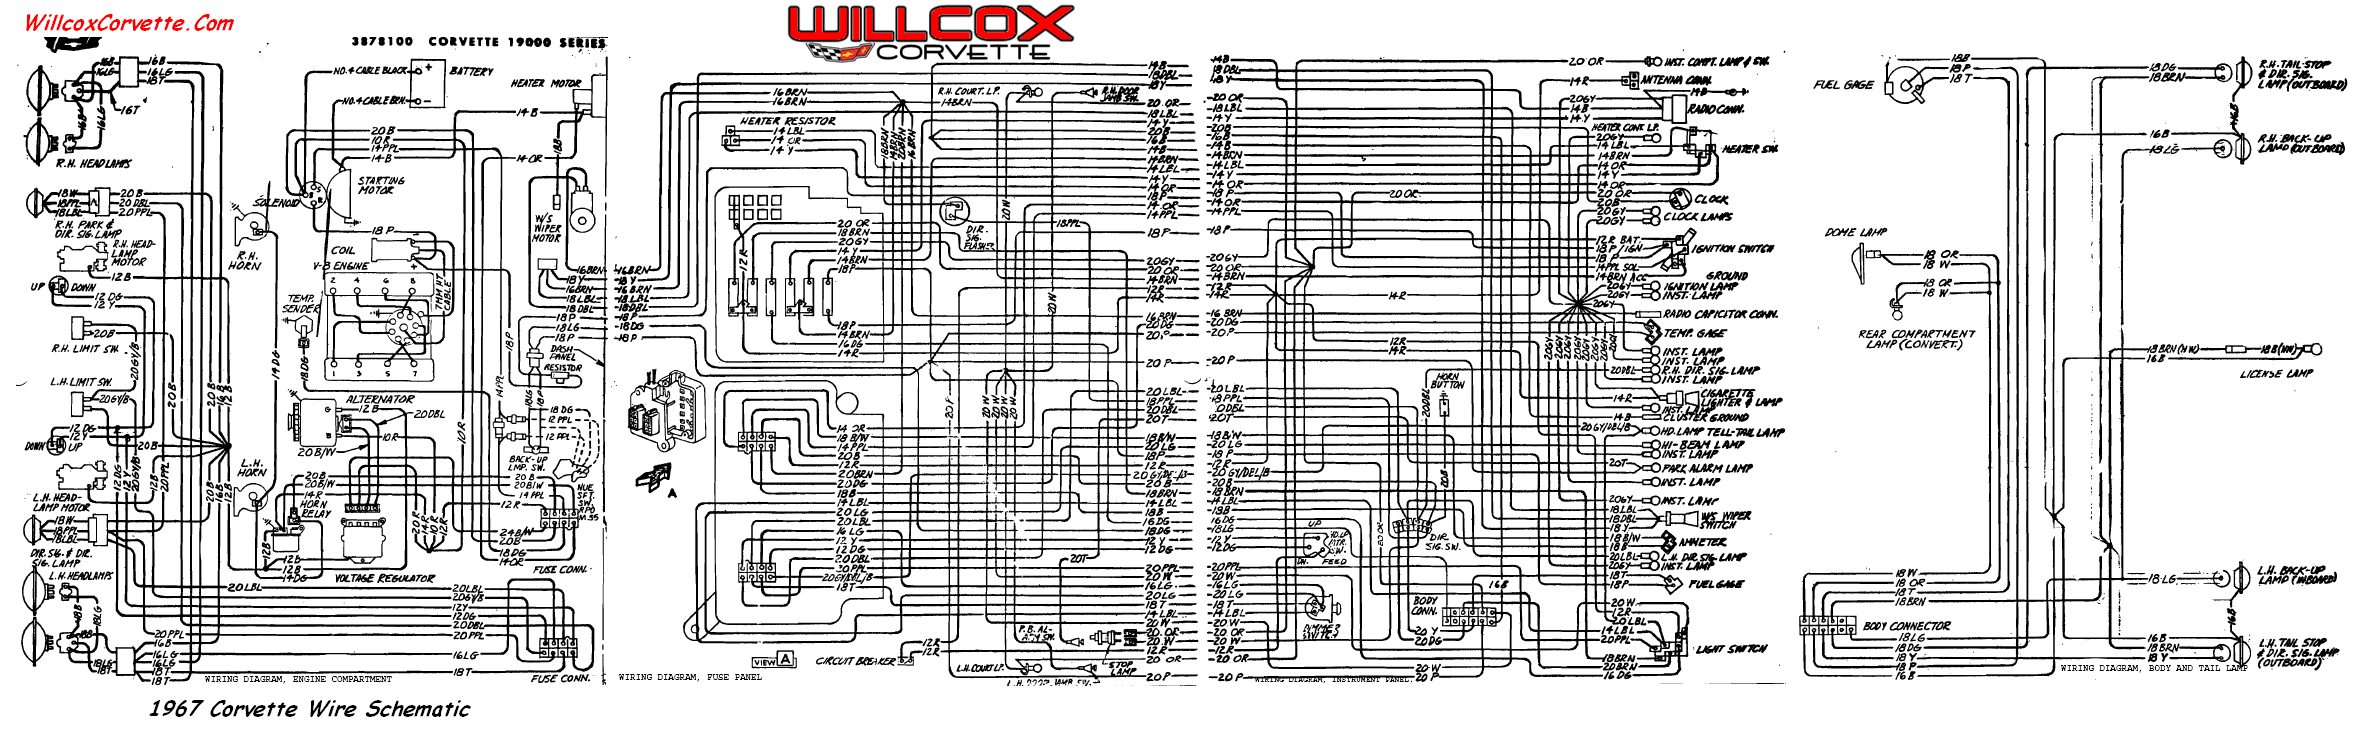 67 wire schematic for tracing wires 1967 corvette wiring diagram (tracer schematic) willcox corvette 1980 corvette wiring diagram at creativeand.co